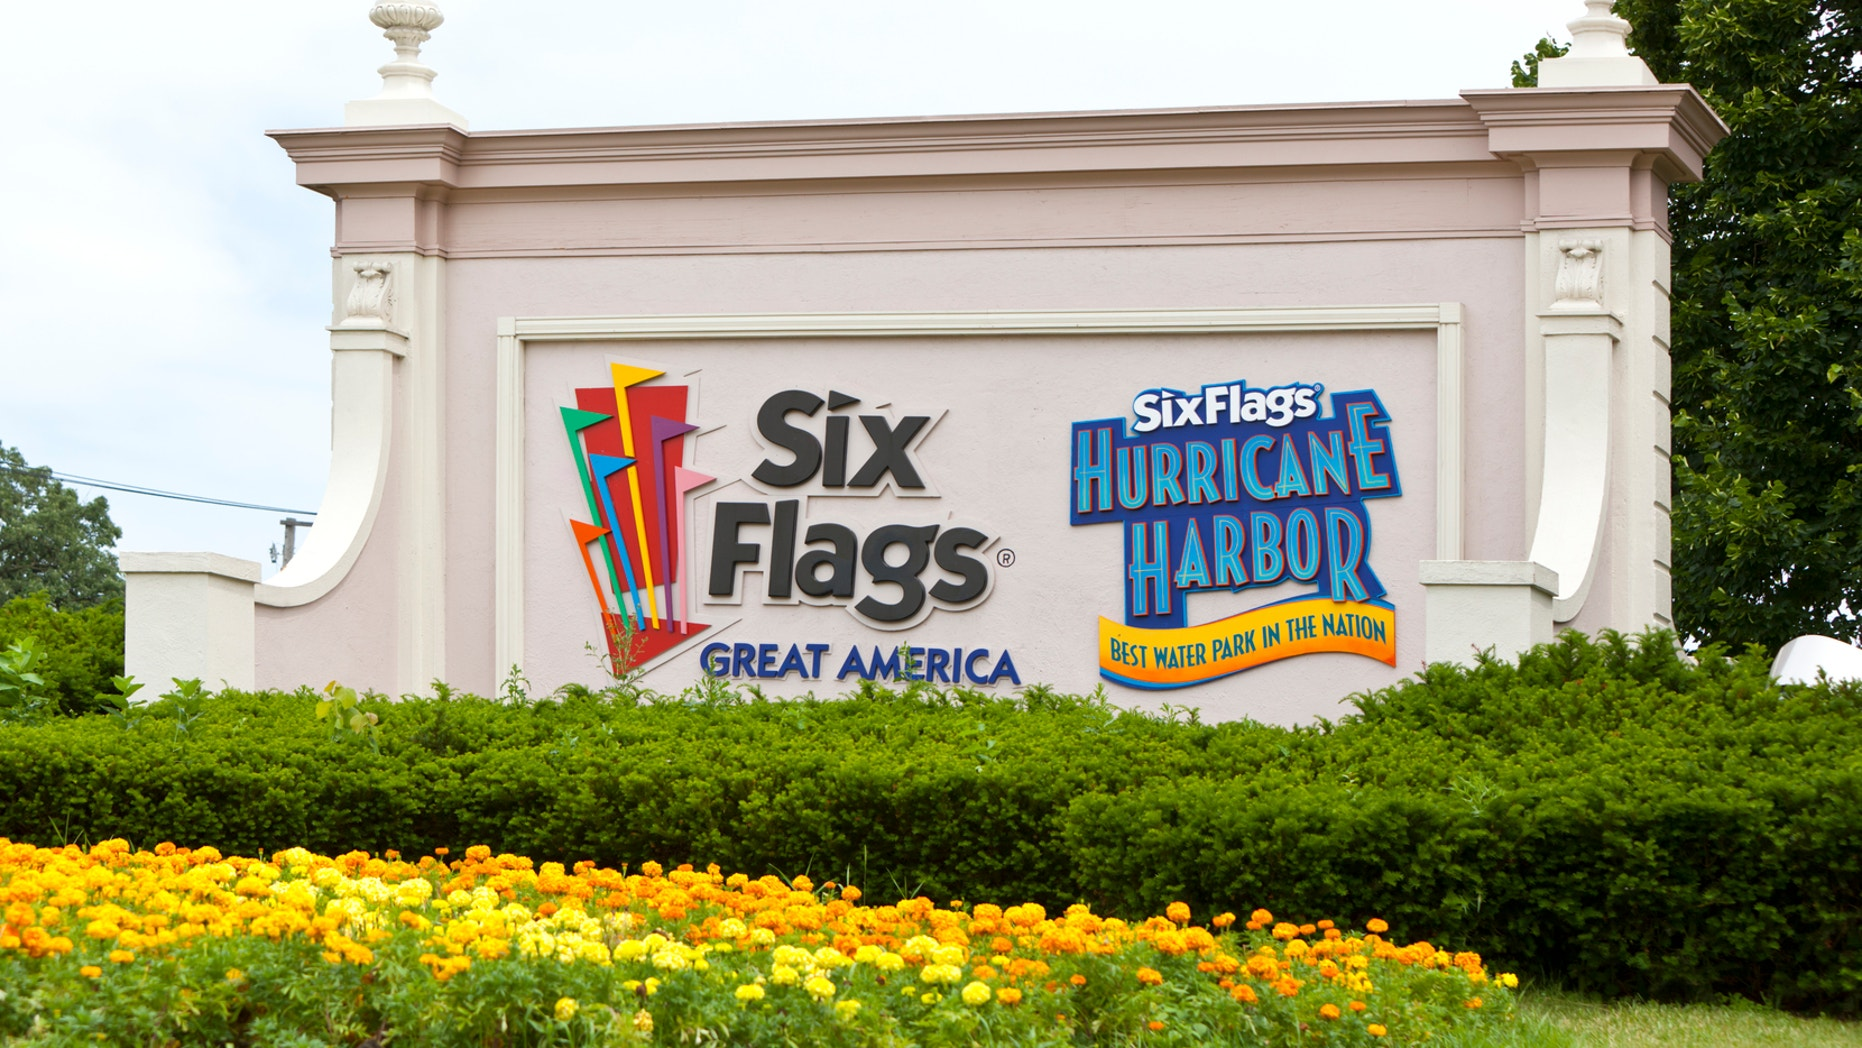 Six Flags, which operates 18 theme park properties in North America, is expanding into the Asian market.